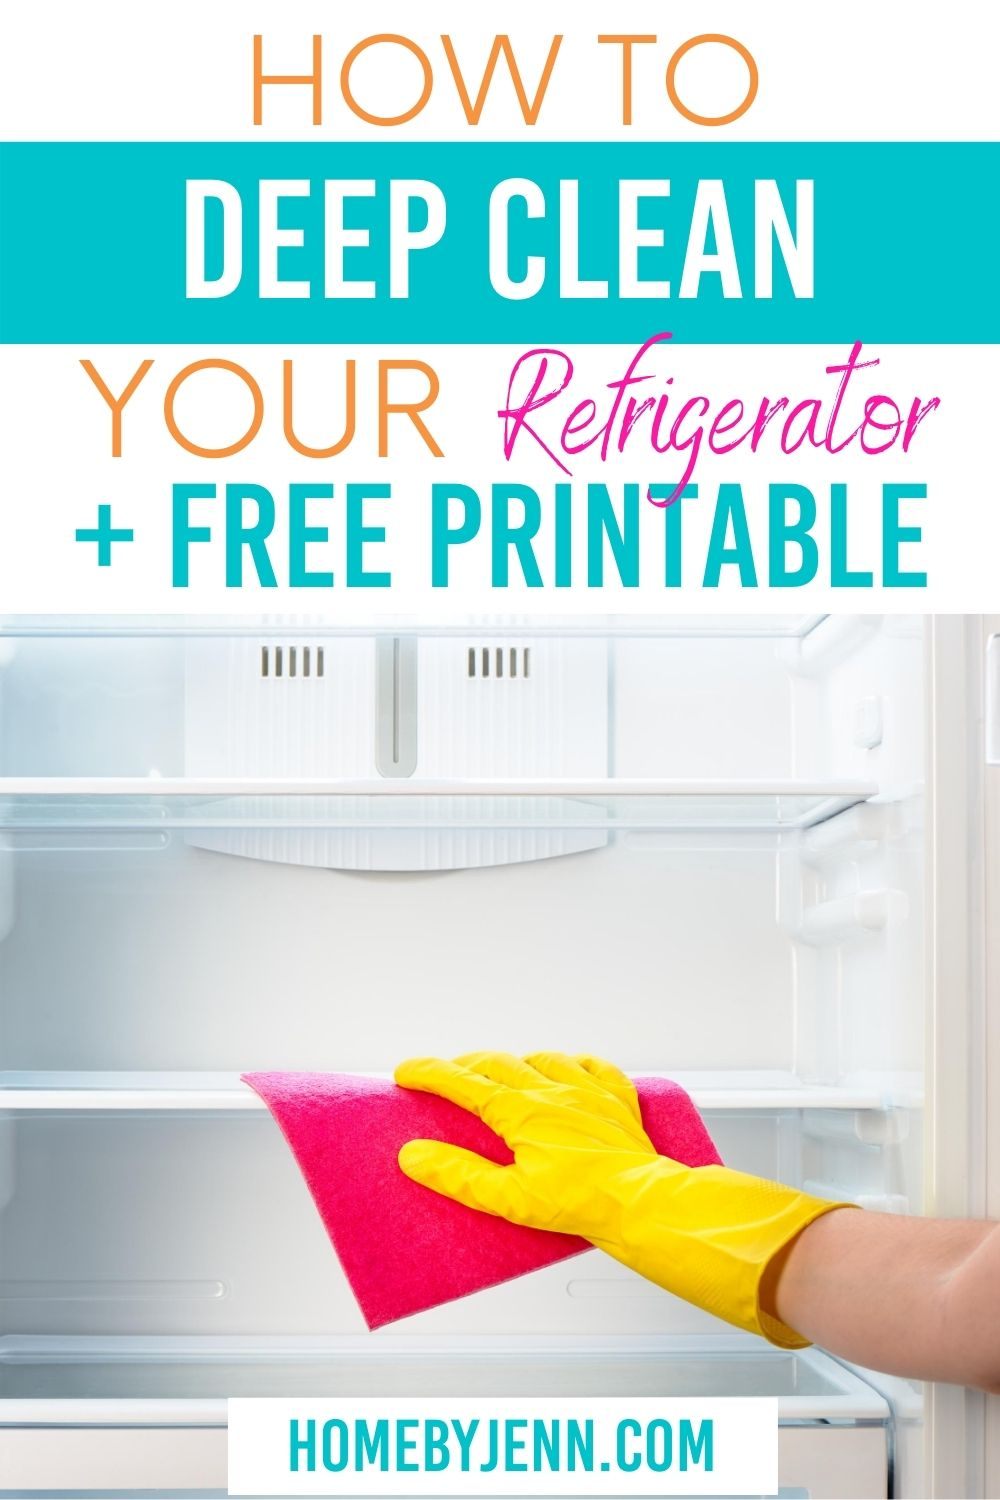 Learn how to deep clean your refrigerator. Check out these tips and tricks to help remove mold, smells, and how to clean refrigerator coils. When you clean your fridge you prolong the life of your fridge and food. via @homebyjenn